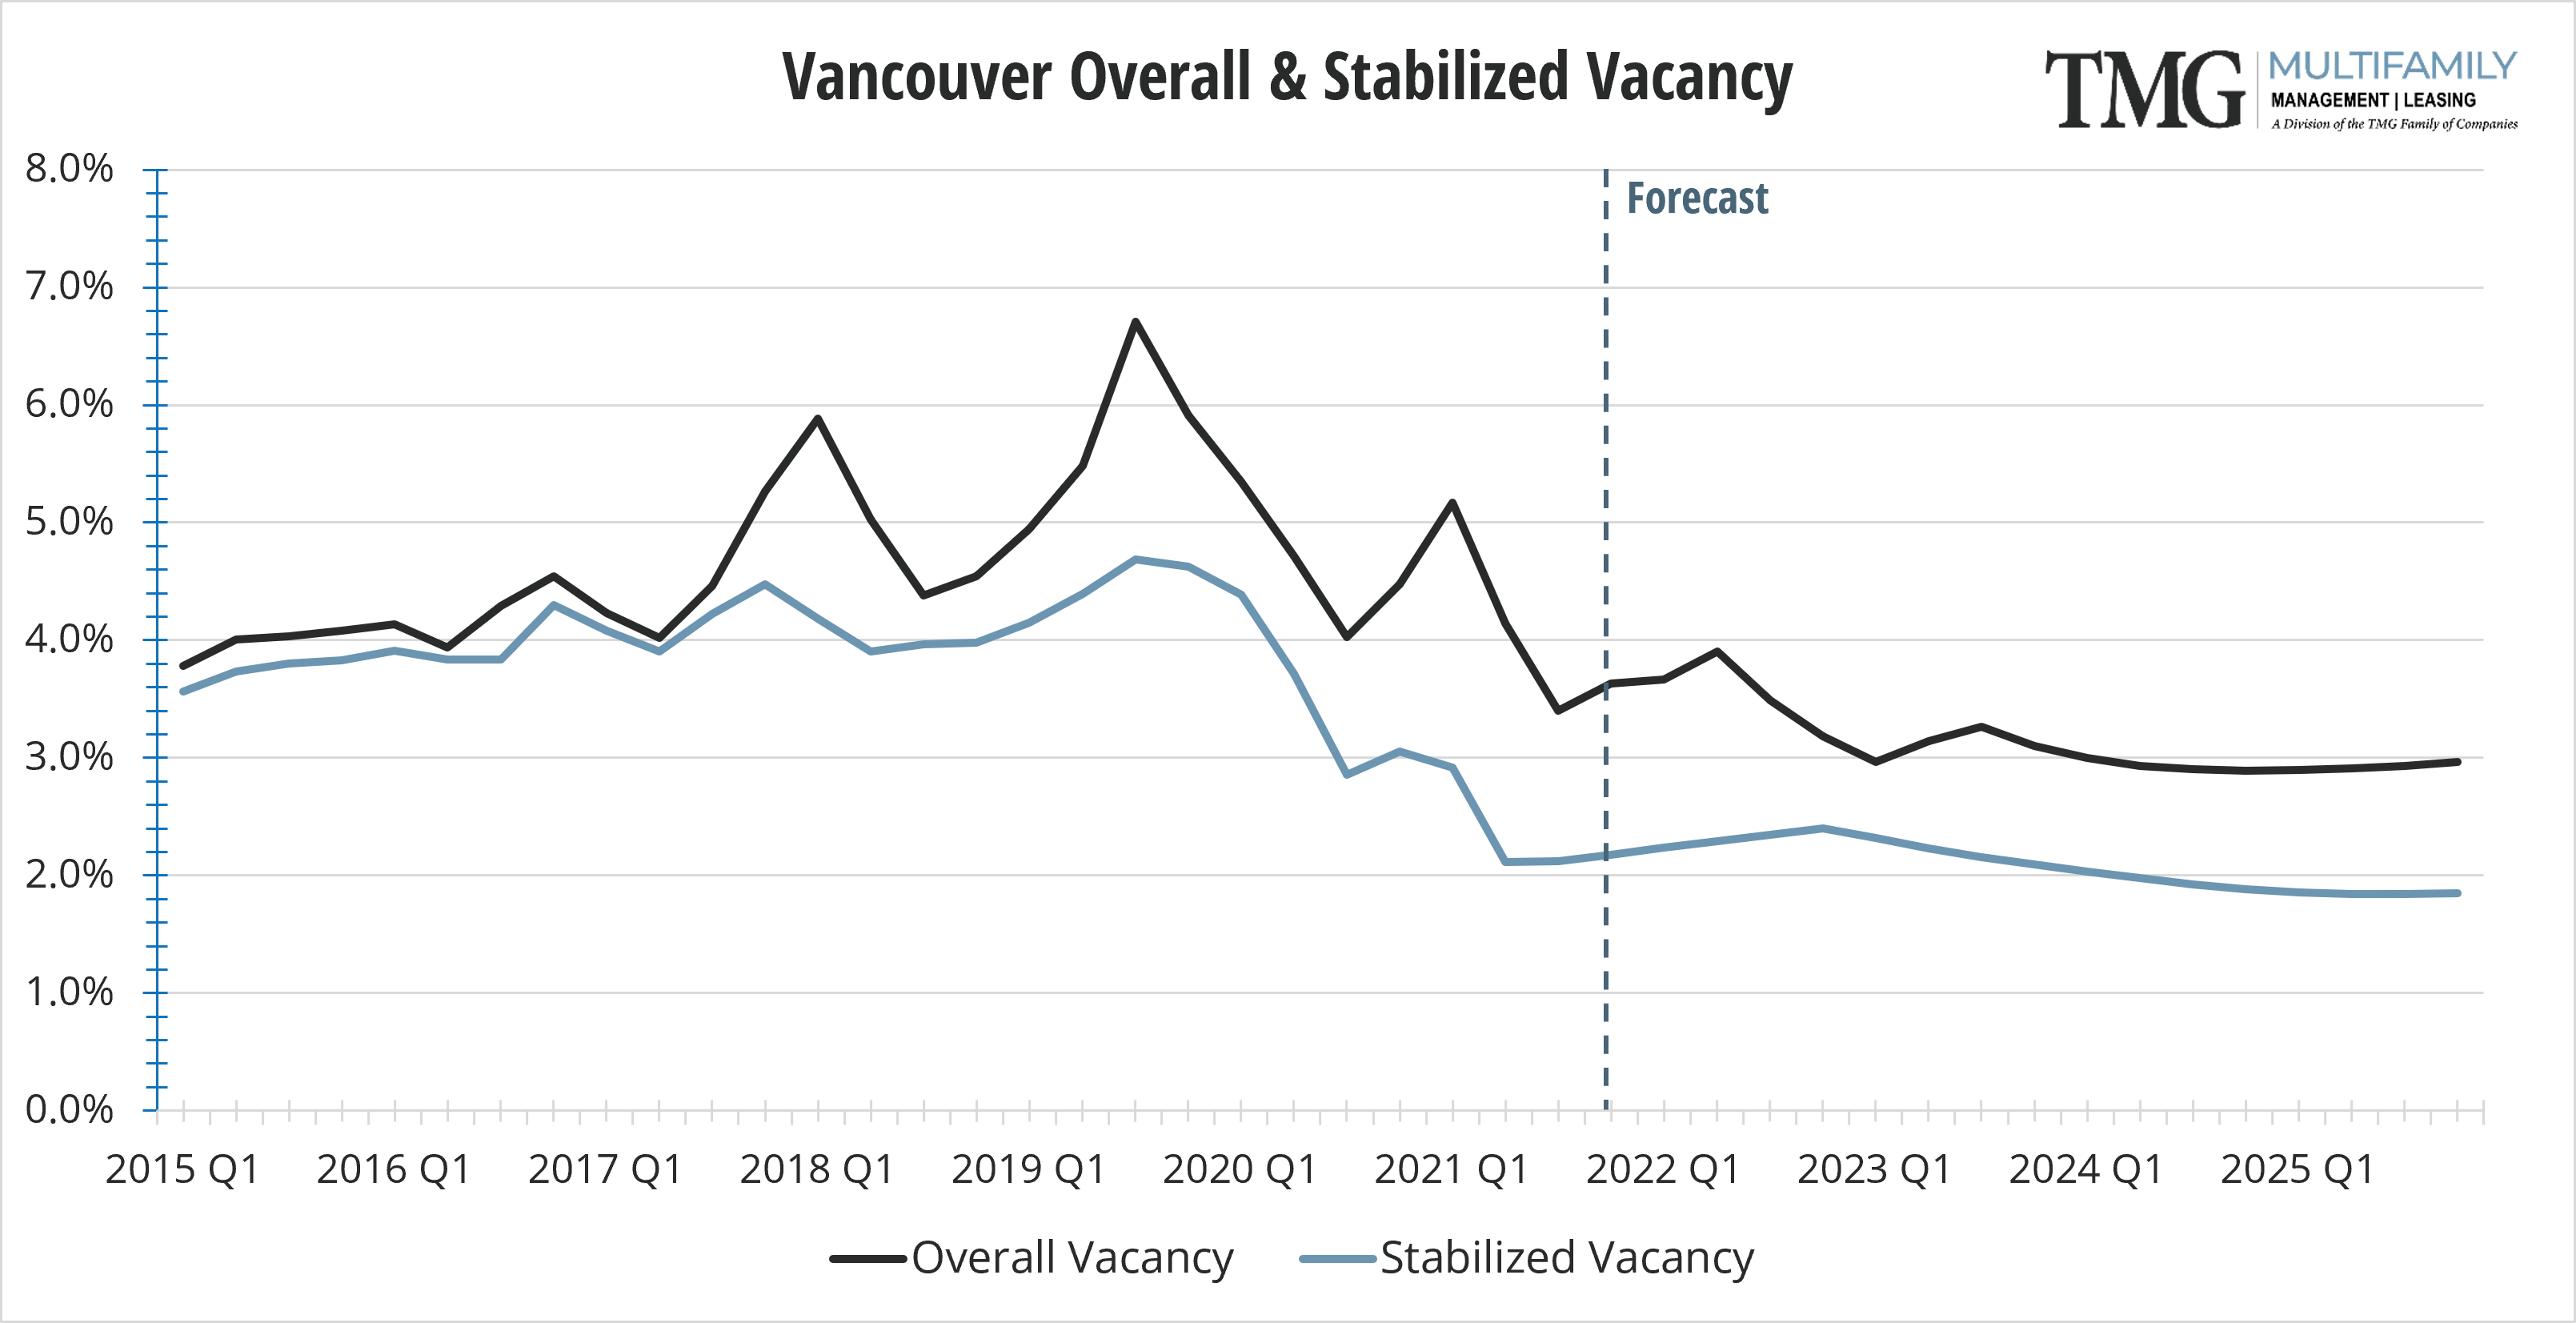 Vancouver Q4 Overall and Stabilized Vacancy